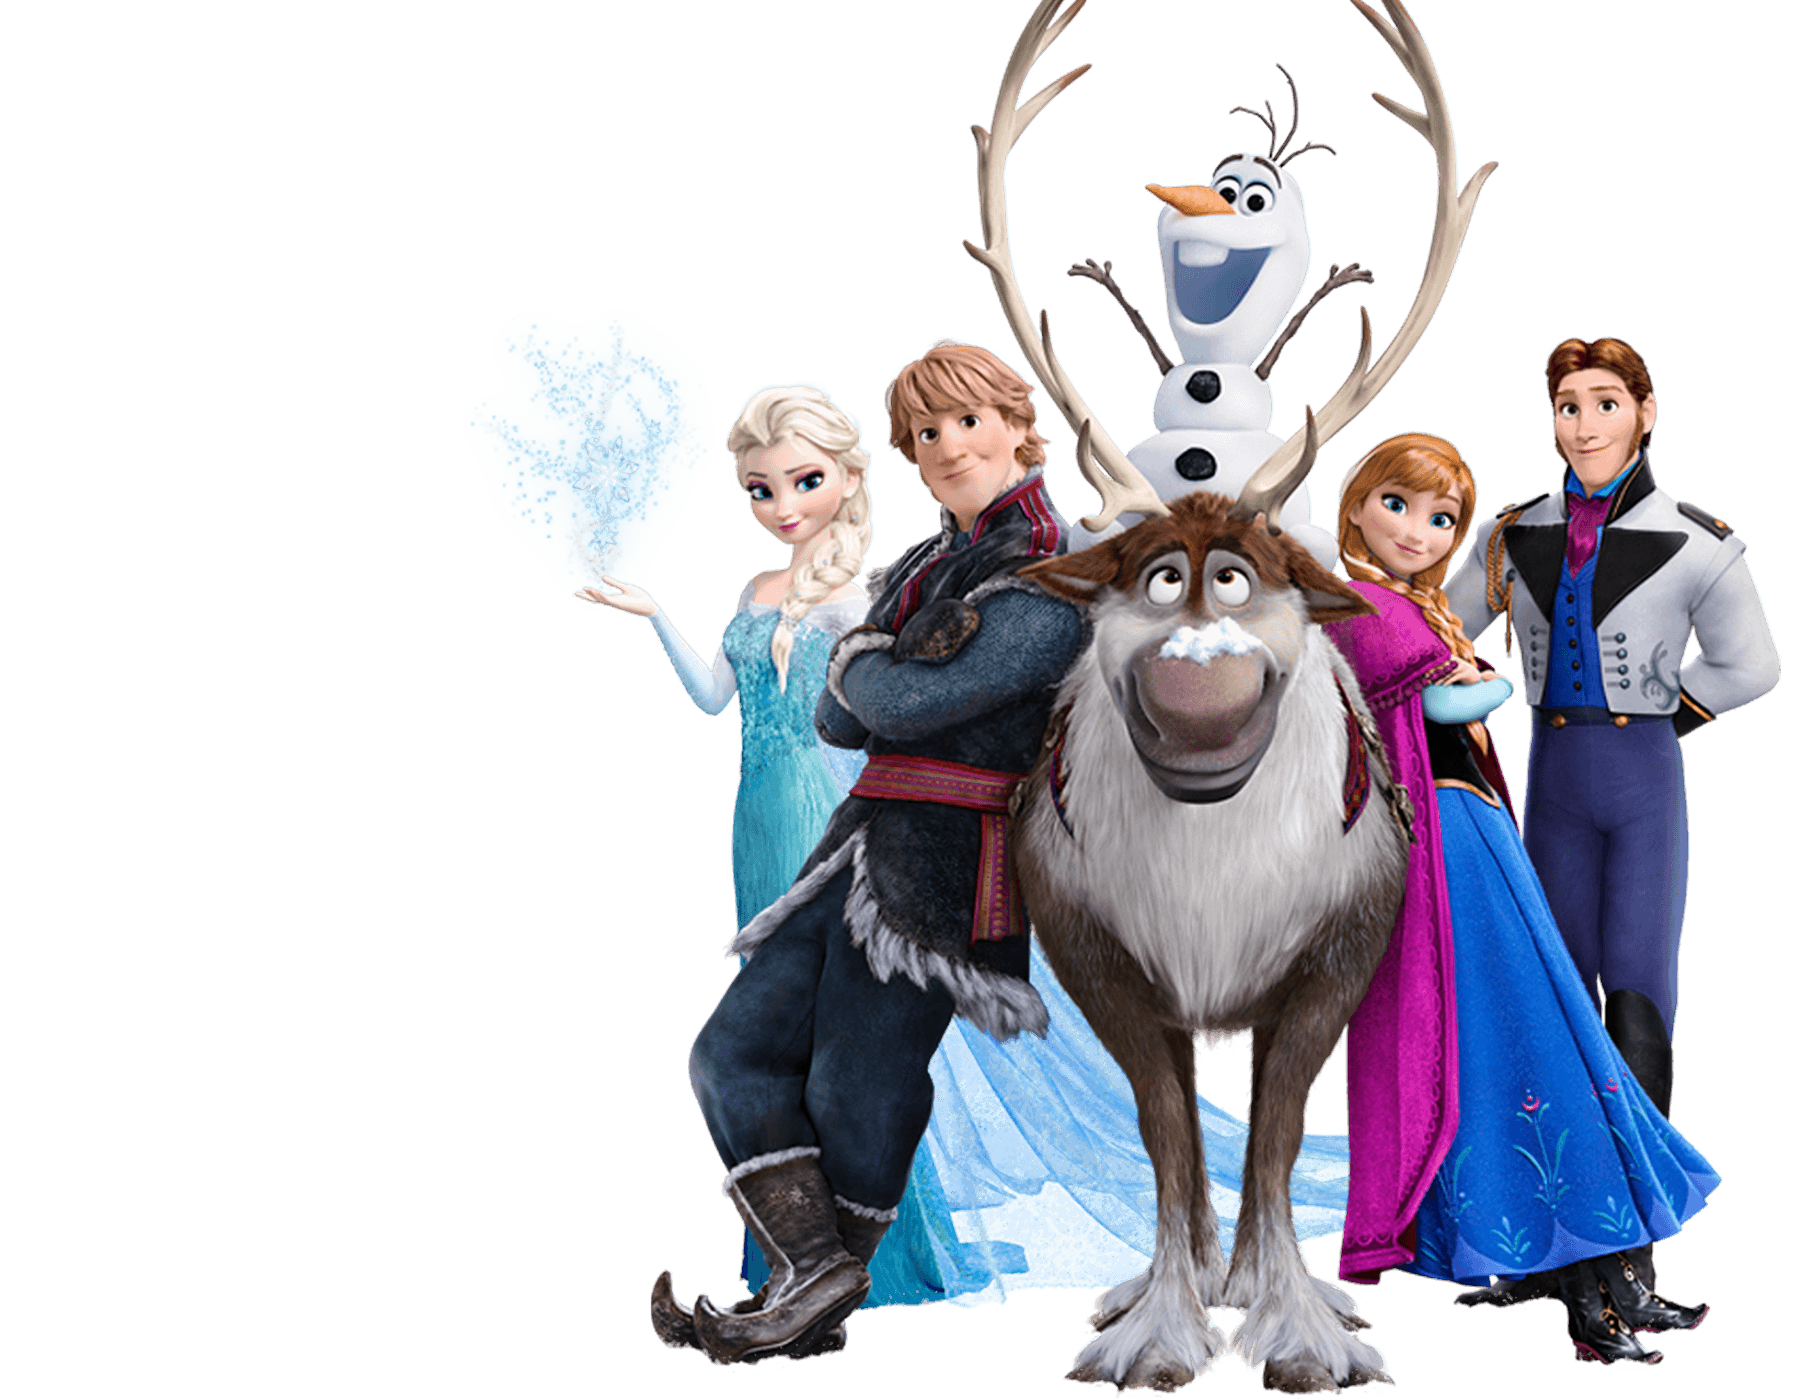 The lovable Frozen snowman and his pals Elsa and Anna star in Olaf's Frozen Adventure, Disney Pixar's latest short set to screen before Coco, the animation giant's newest film opening Nov.